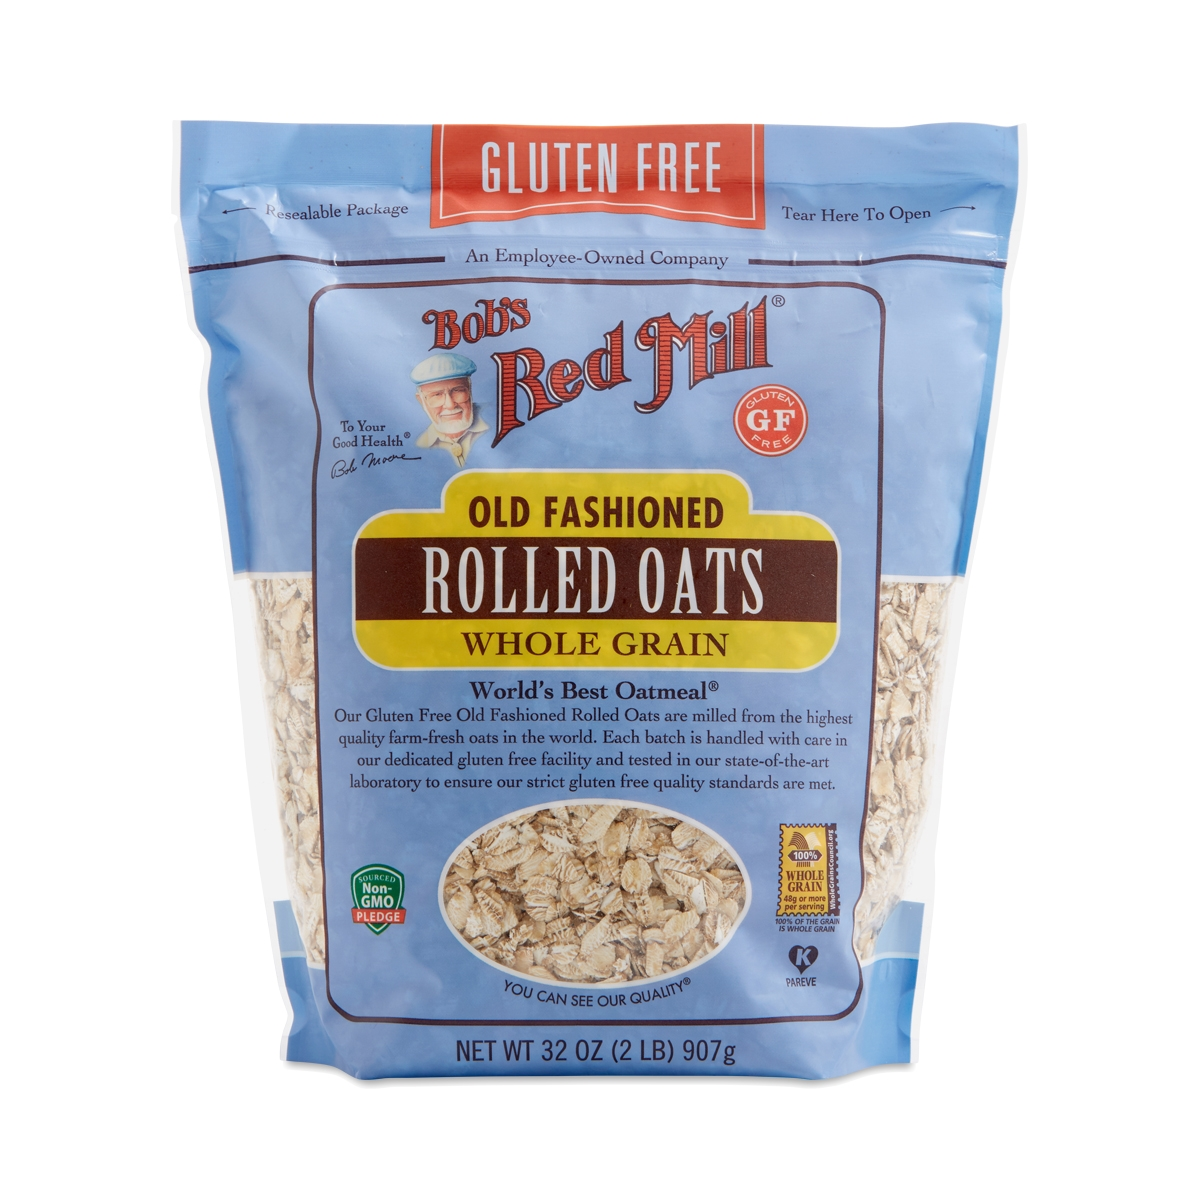 Bob's Red Mill Gluten-Free Rolled Oats 32 oz bag